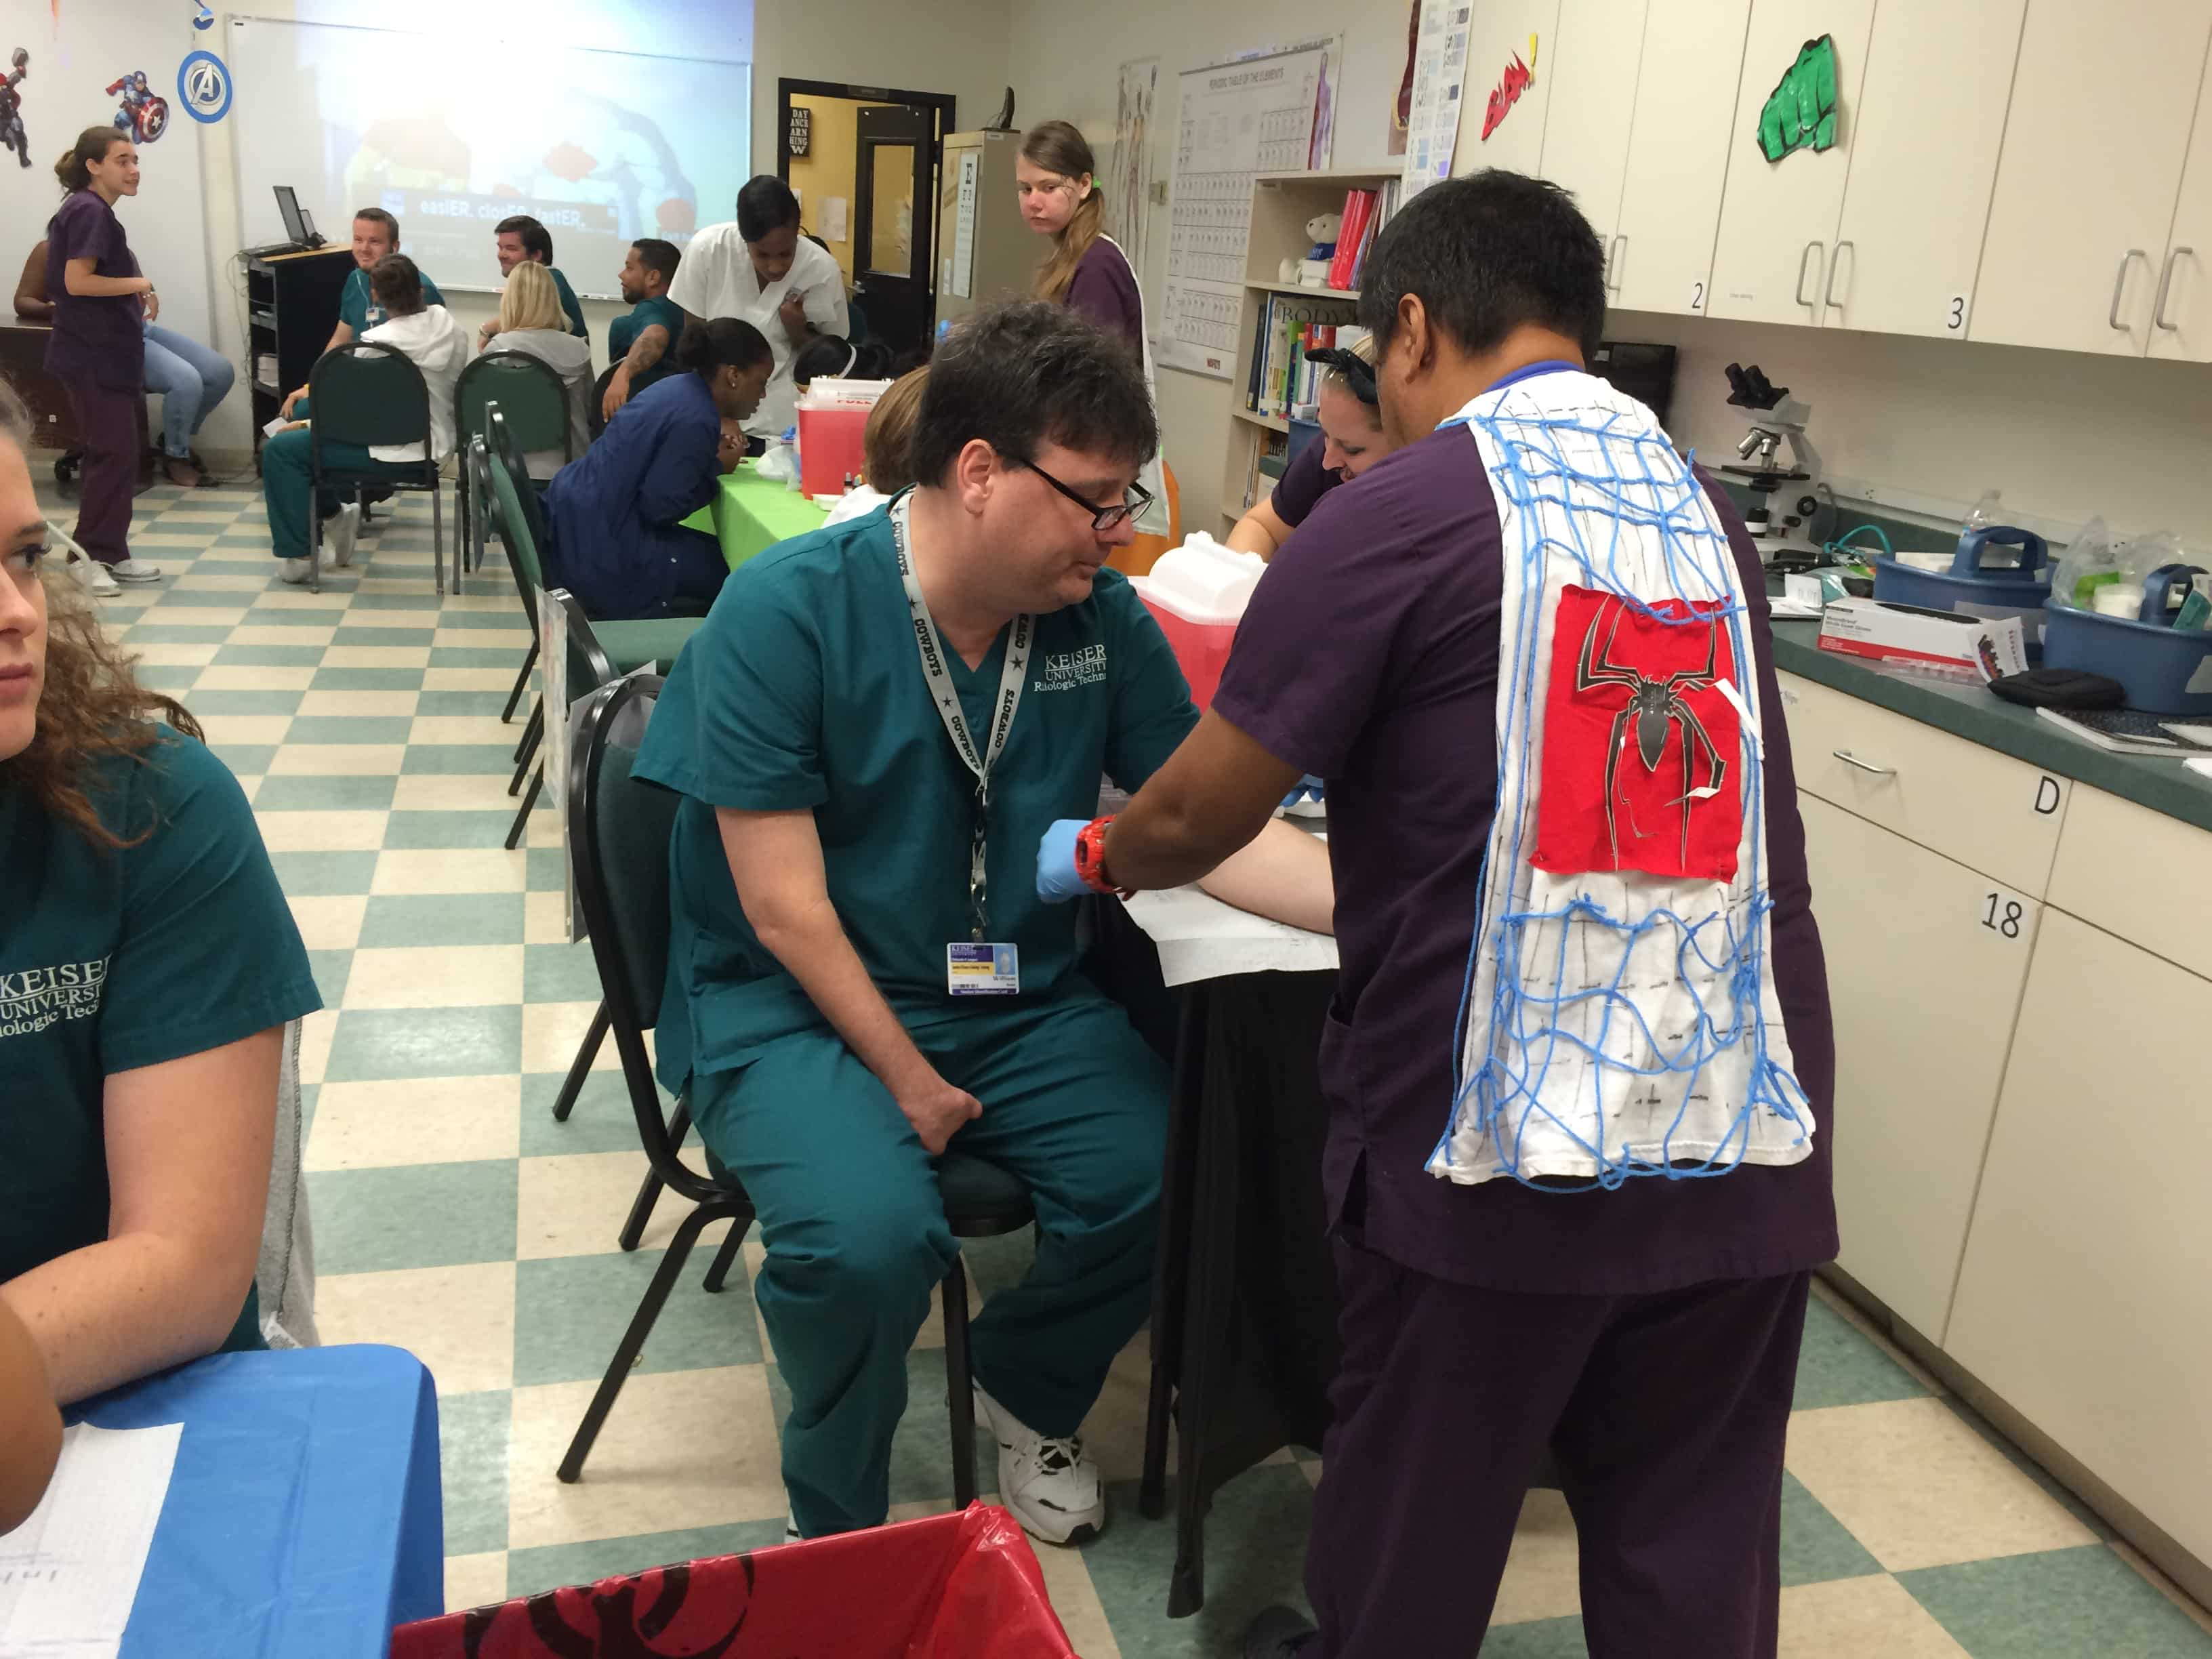 Medical Assistants in Orlando are Super Heroes